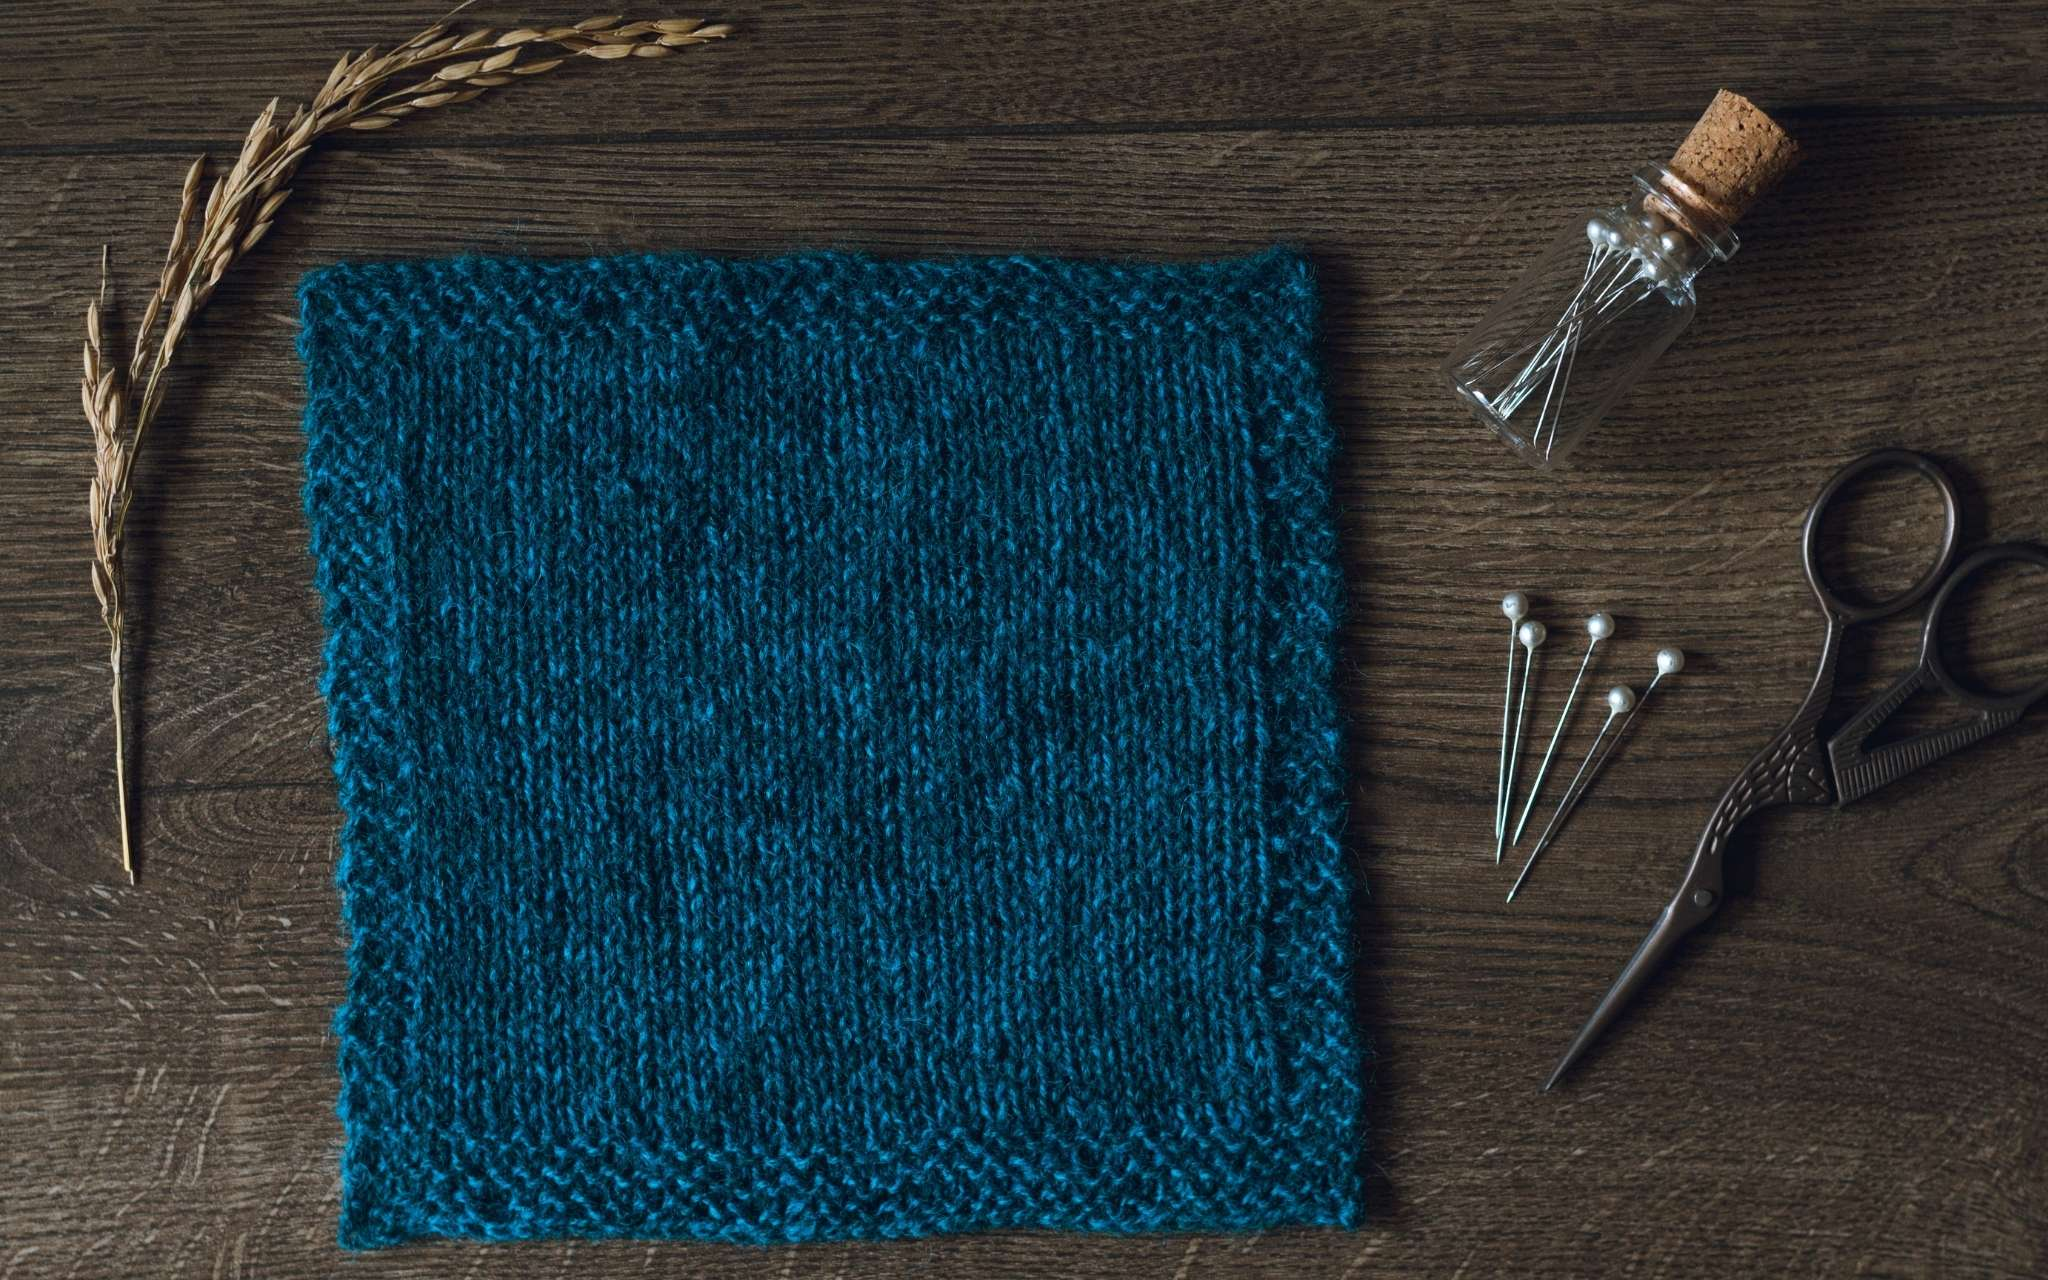 A swatch of stocking stitch in dark blue laid flat on a wooden surface. There are some dried stems, scissors and a bottle of pints to the side.